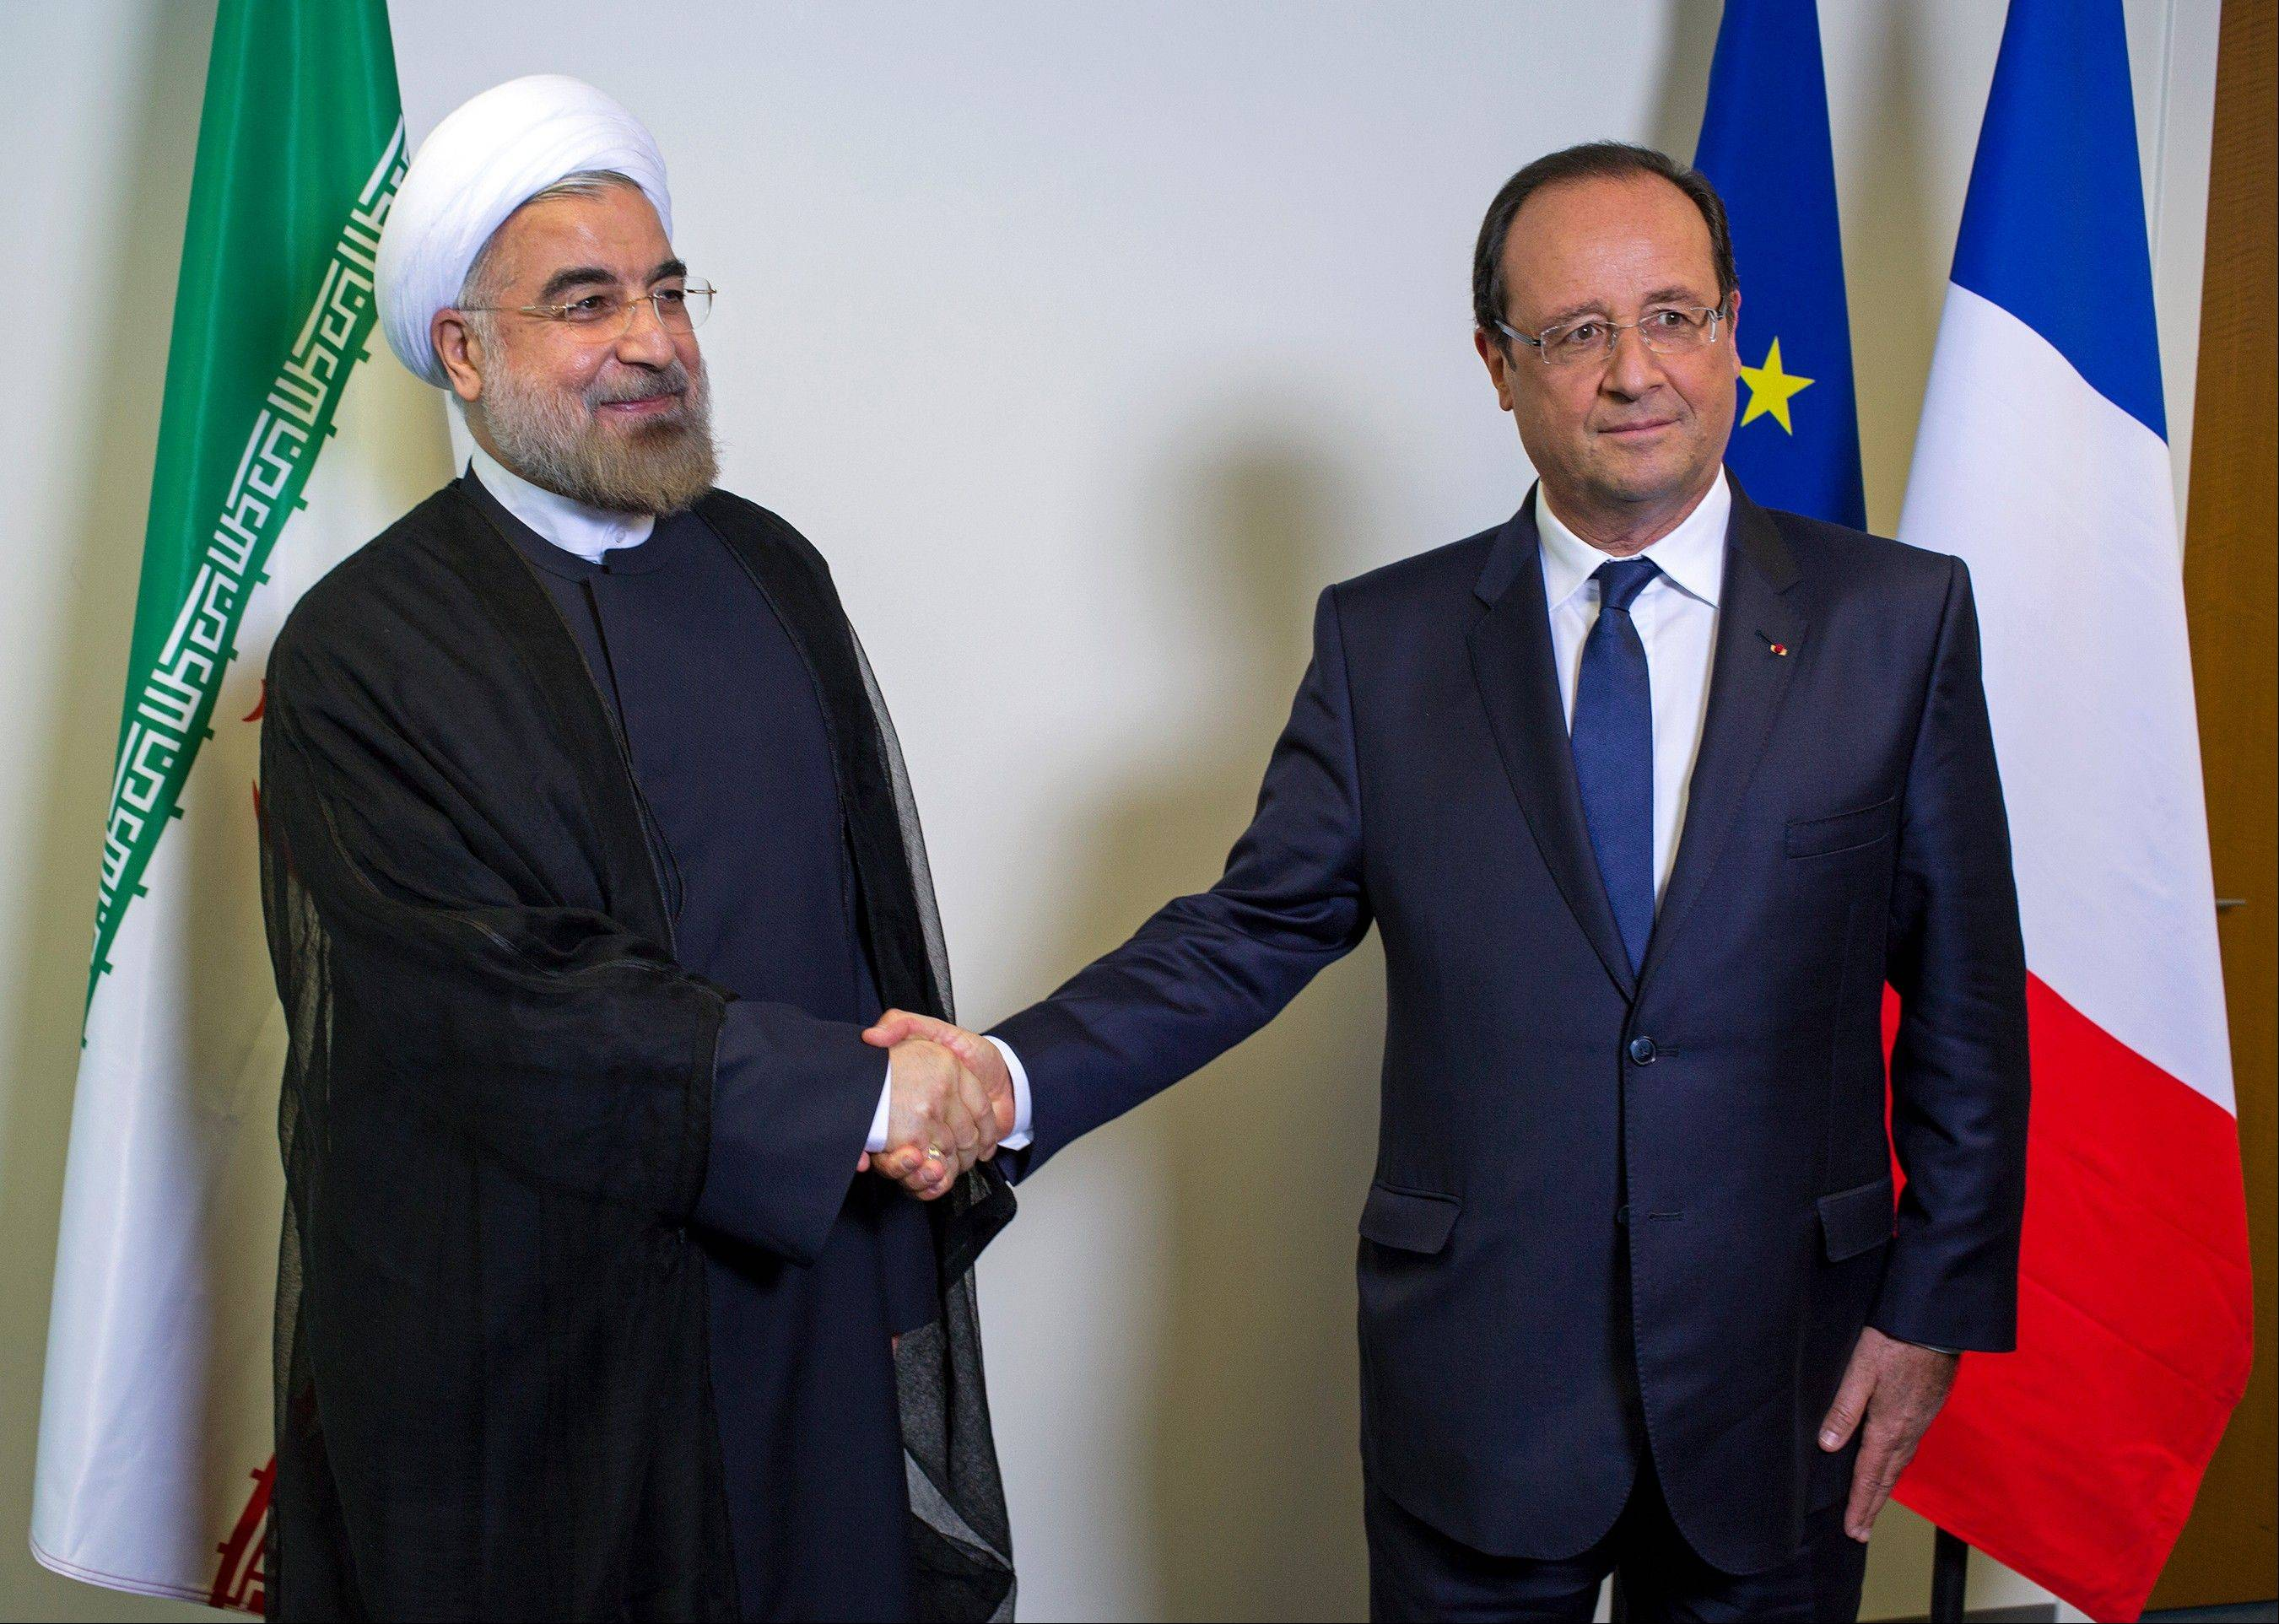 Iranian President Hasan Rouhani shakes hands with French President Francois Hollande during the 68th session of the United Nations General Assembly at United Nations headquarters Tuesday, Sept. 24, 2013.